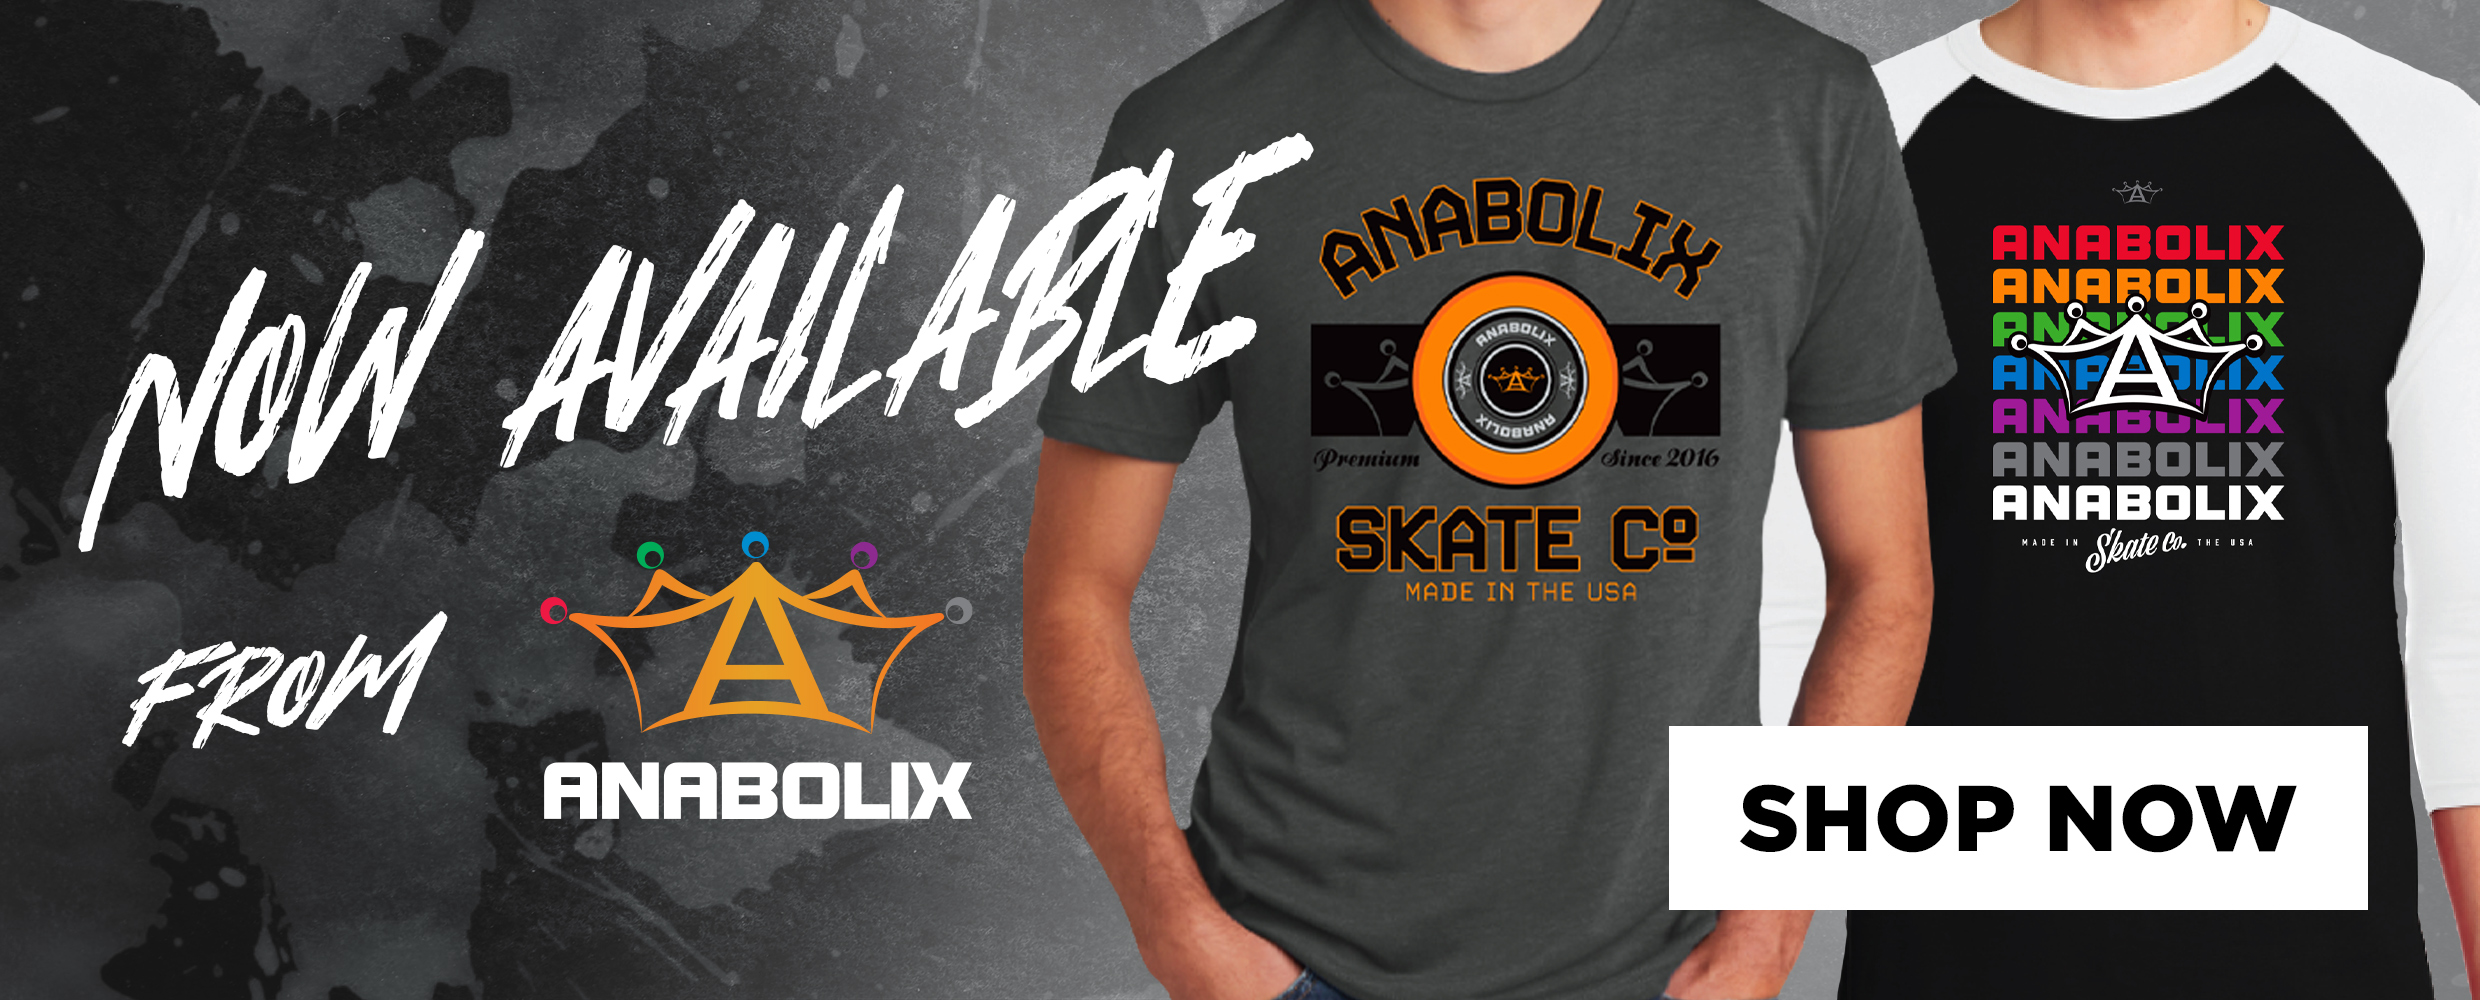 new anabolix apparel